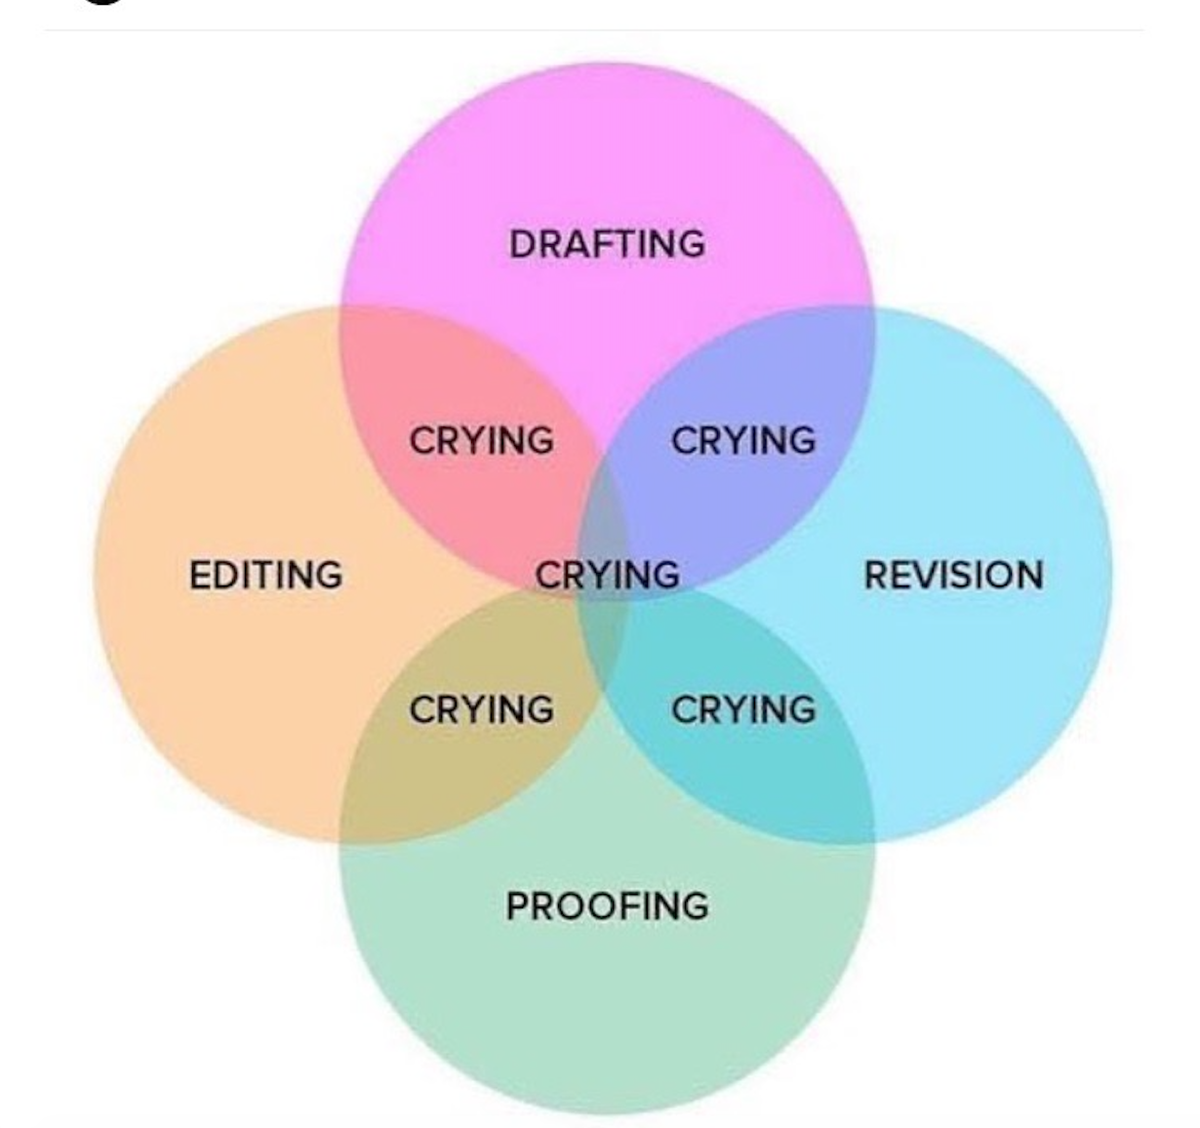 Who made this?   #accurate #writingcommunity pic.twitter.com/12sJg4HEKy